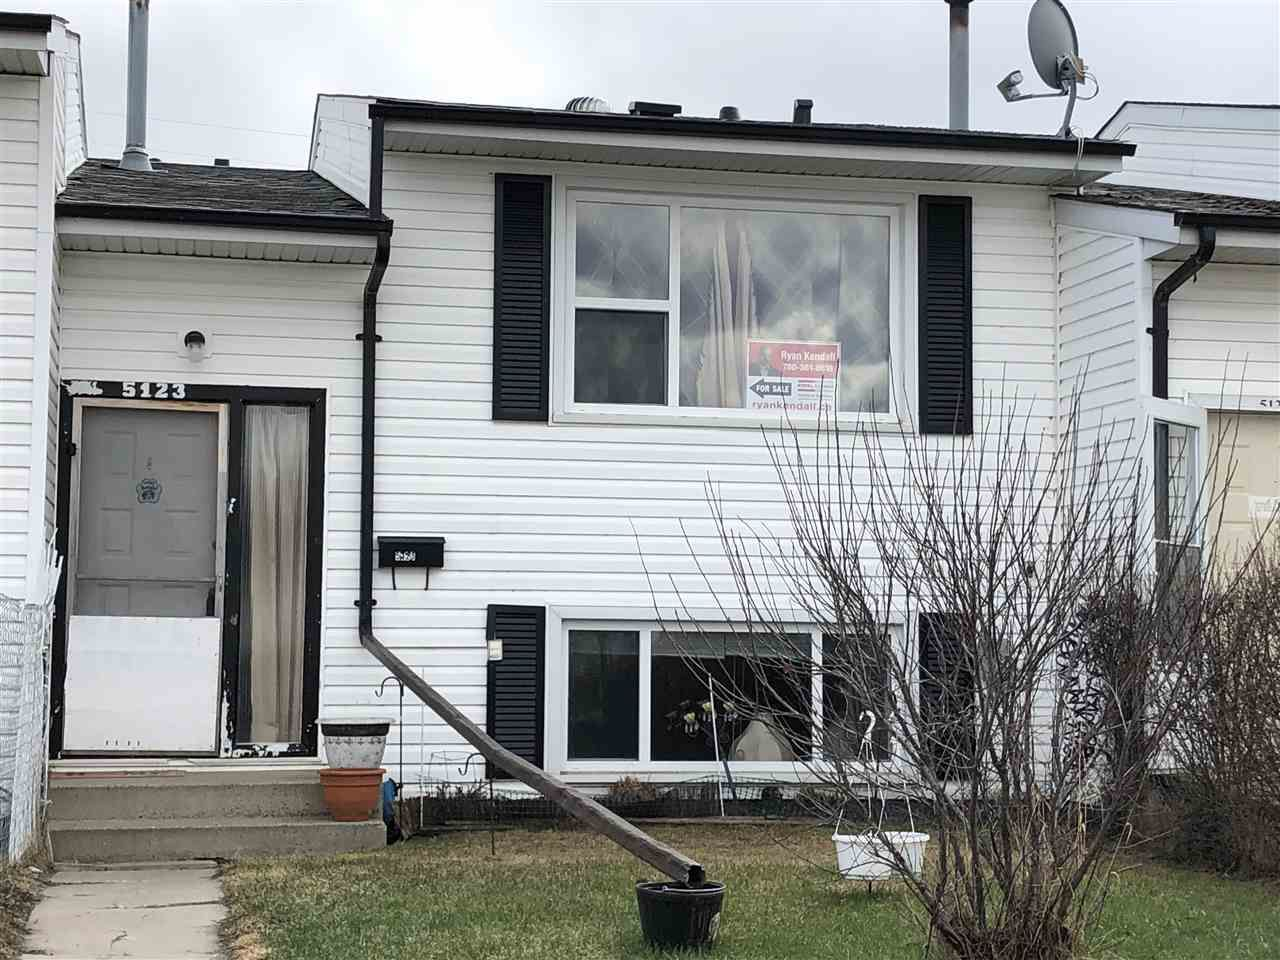 Main Photo: 5123 55 Avenue: Wetaskiwin Attached Home for sale : MLS®# E4151322